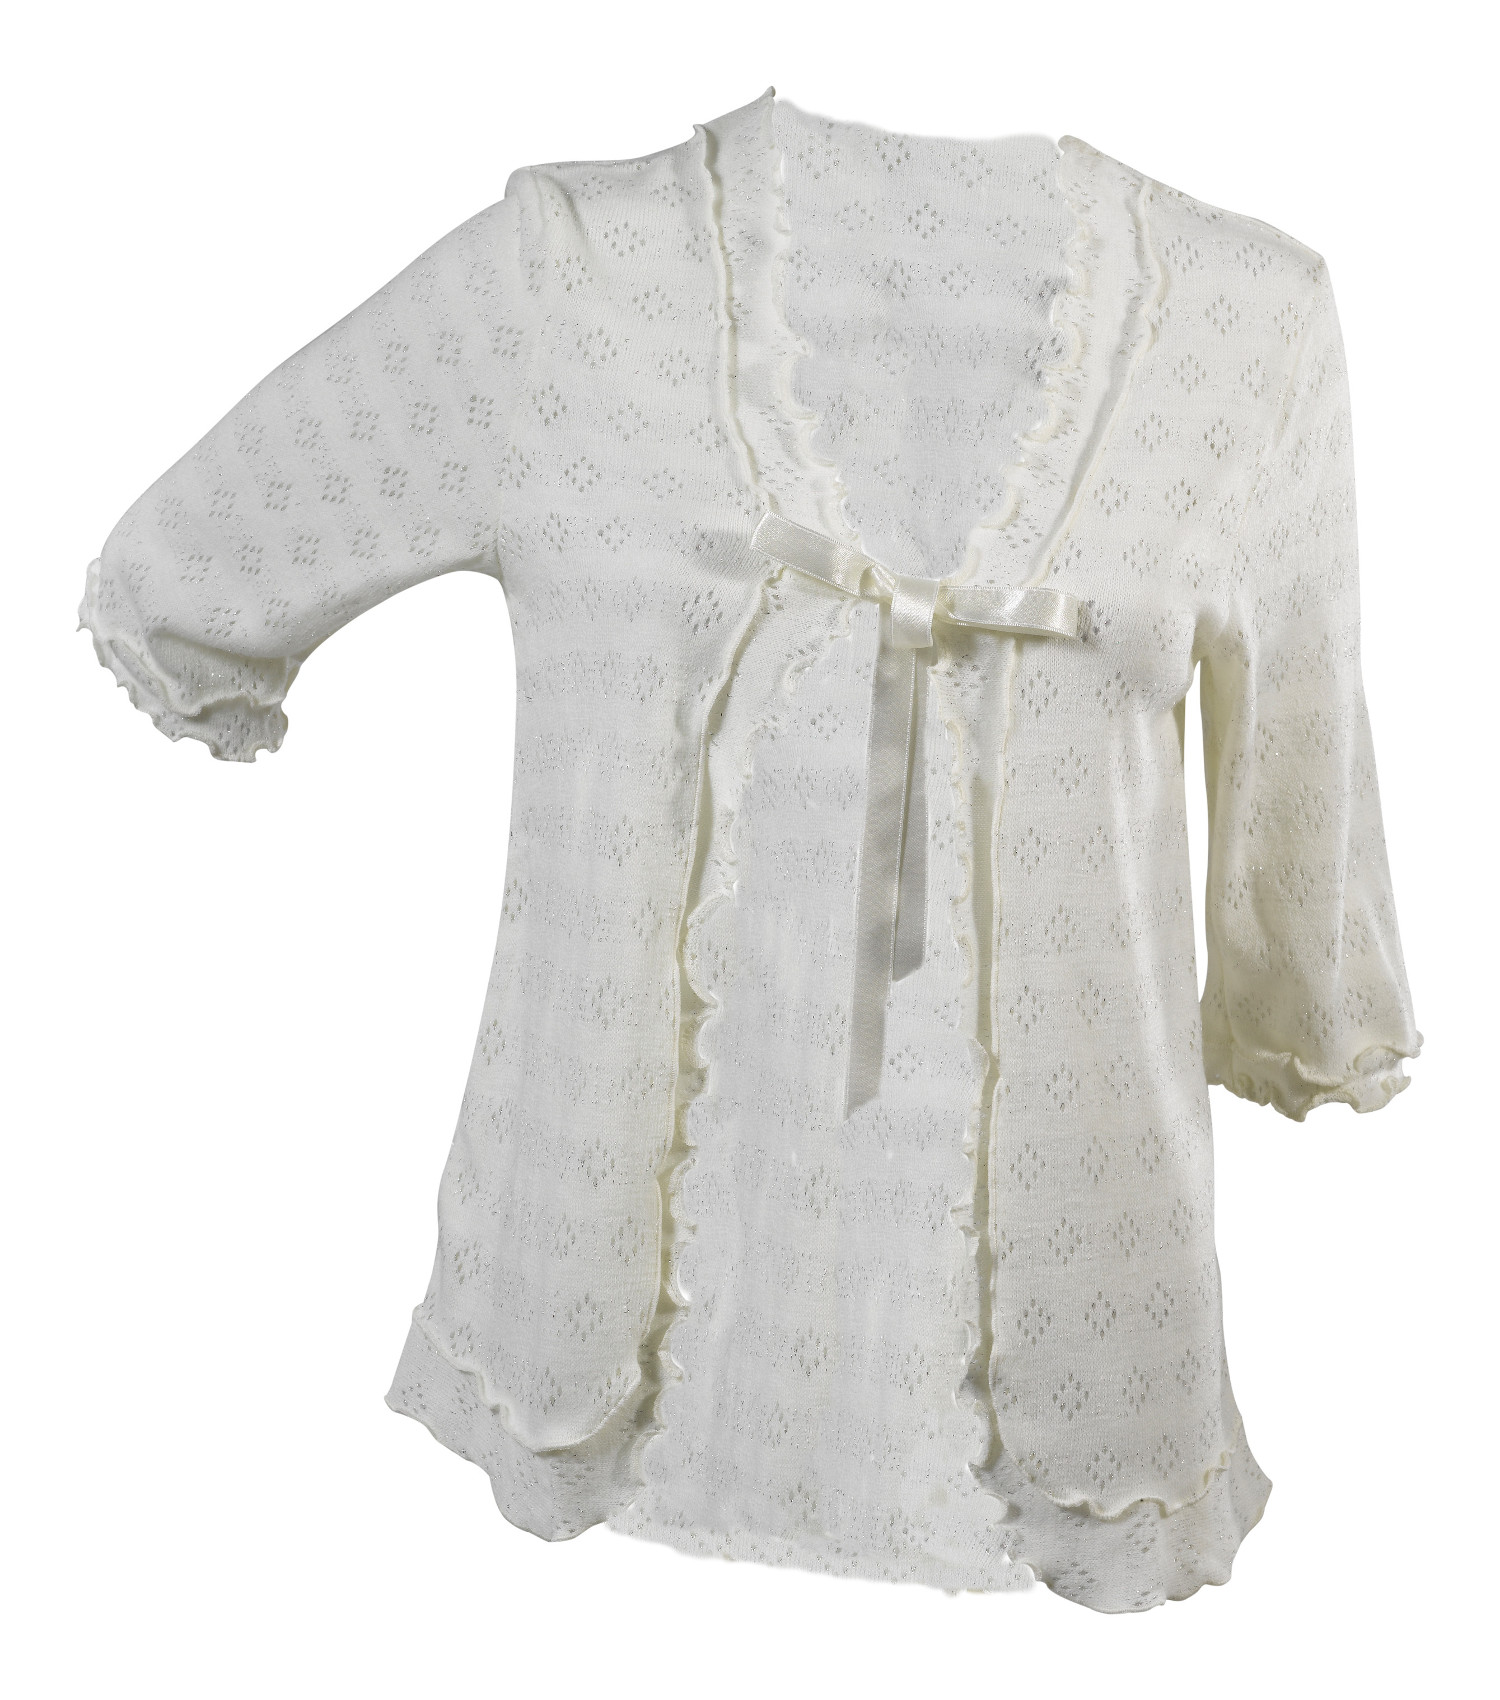 Bed Jacket Slenderella Womens Lace Style Sparkly Ribbon Tie ...